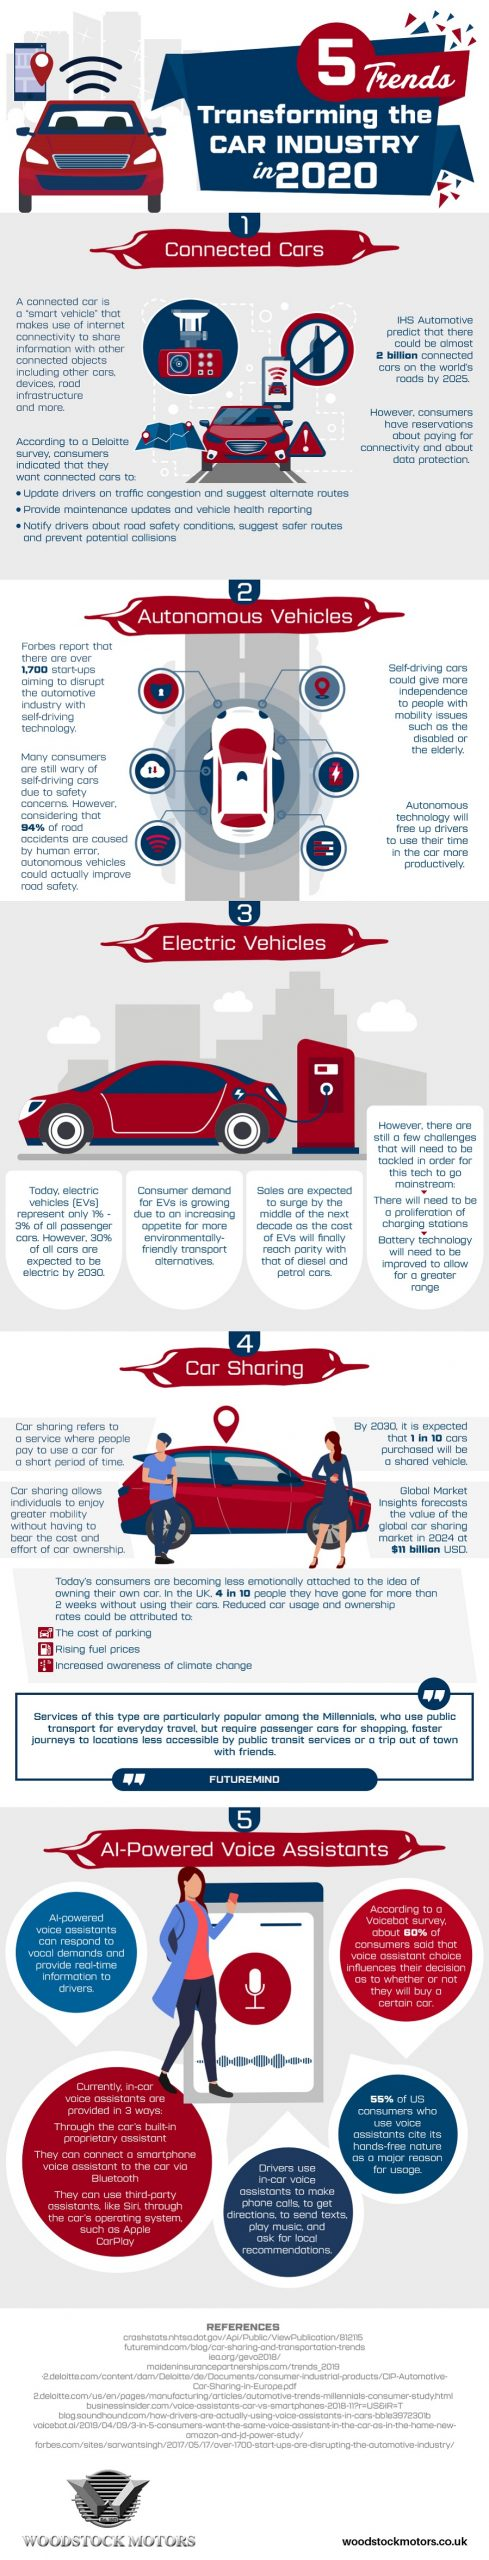 Infographic of 5 Trends Transforming the Car Industry in 2020